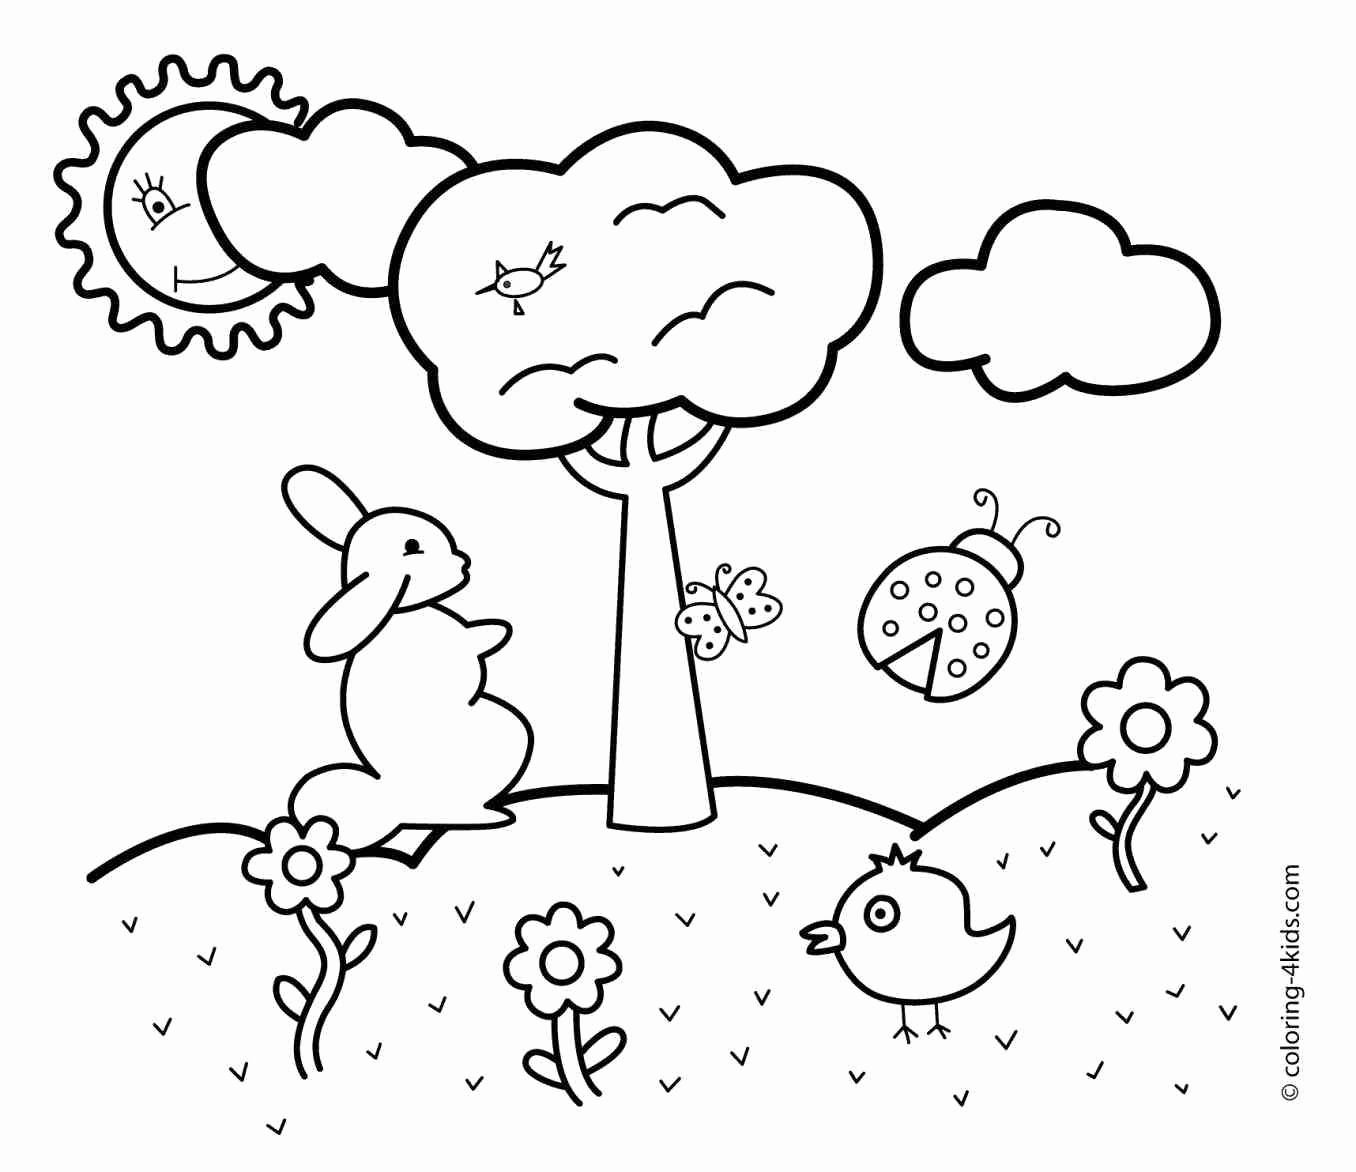 spring nature coloring pages pin by samantha chew on coloring pages coloring pages nature spring coloring pages